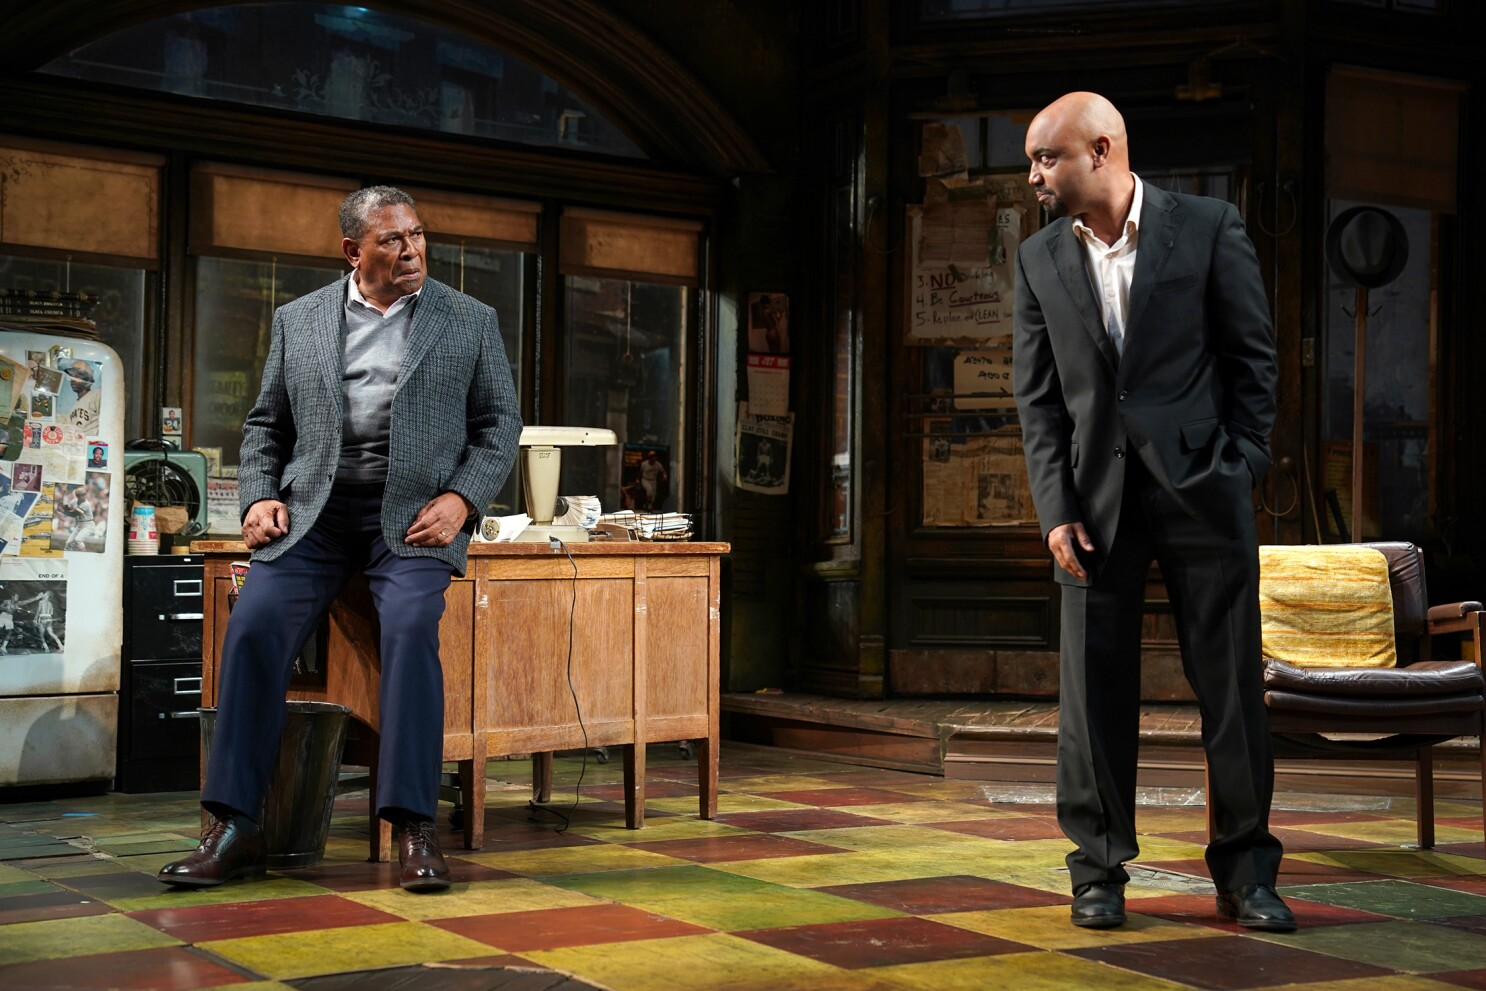 Review: 'August Wilson's Jitney' a masterfully acted saga of hope and struggle in a fading neighborhood